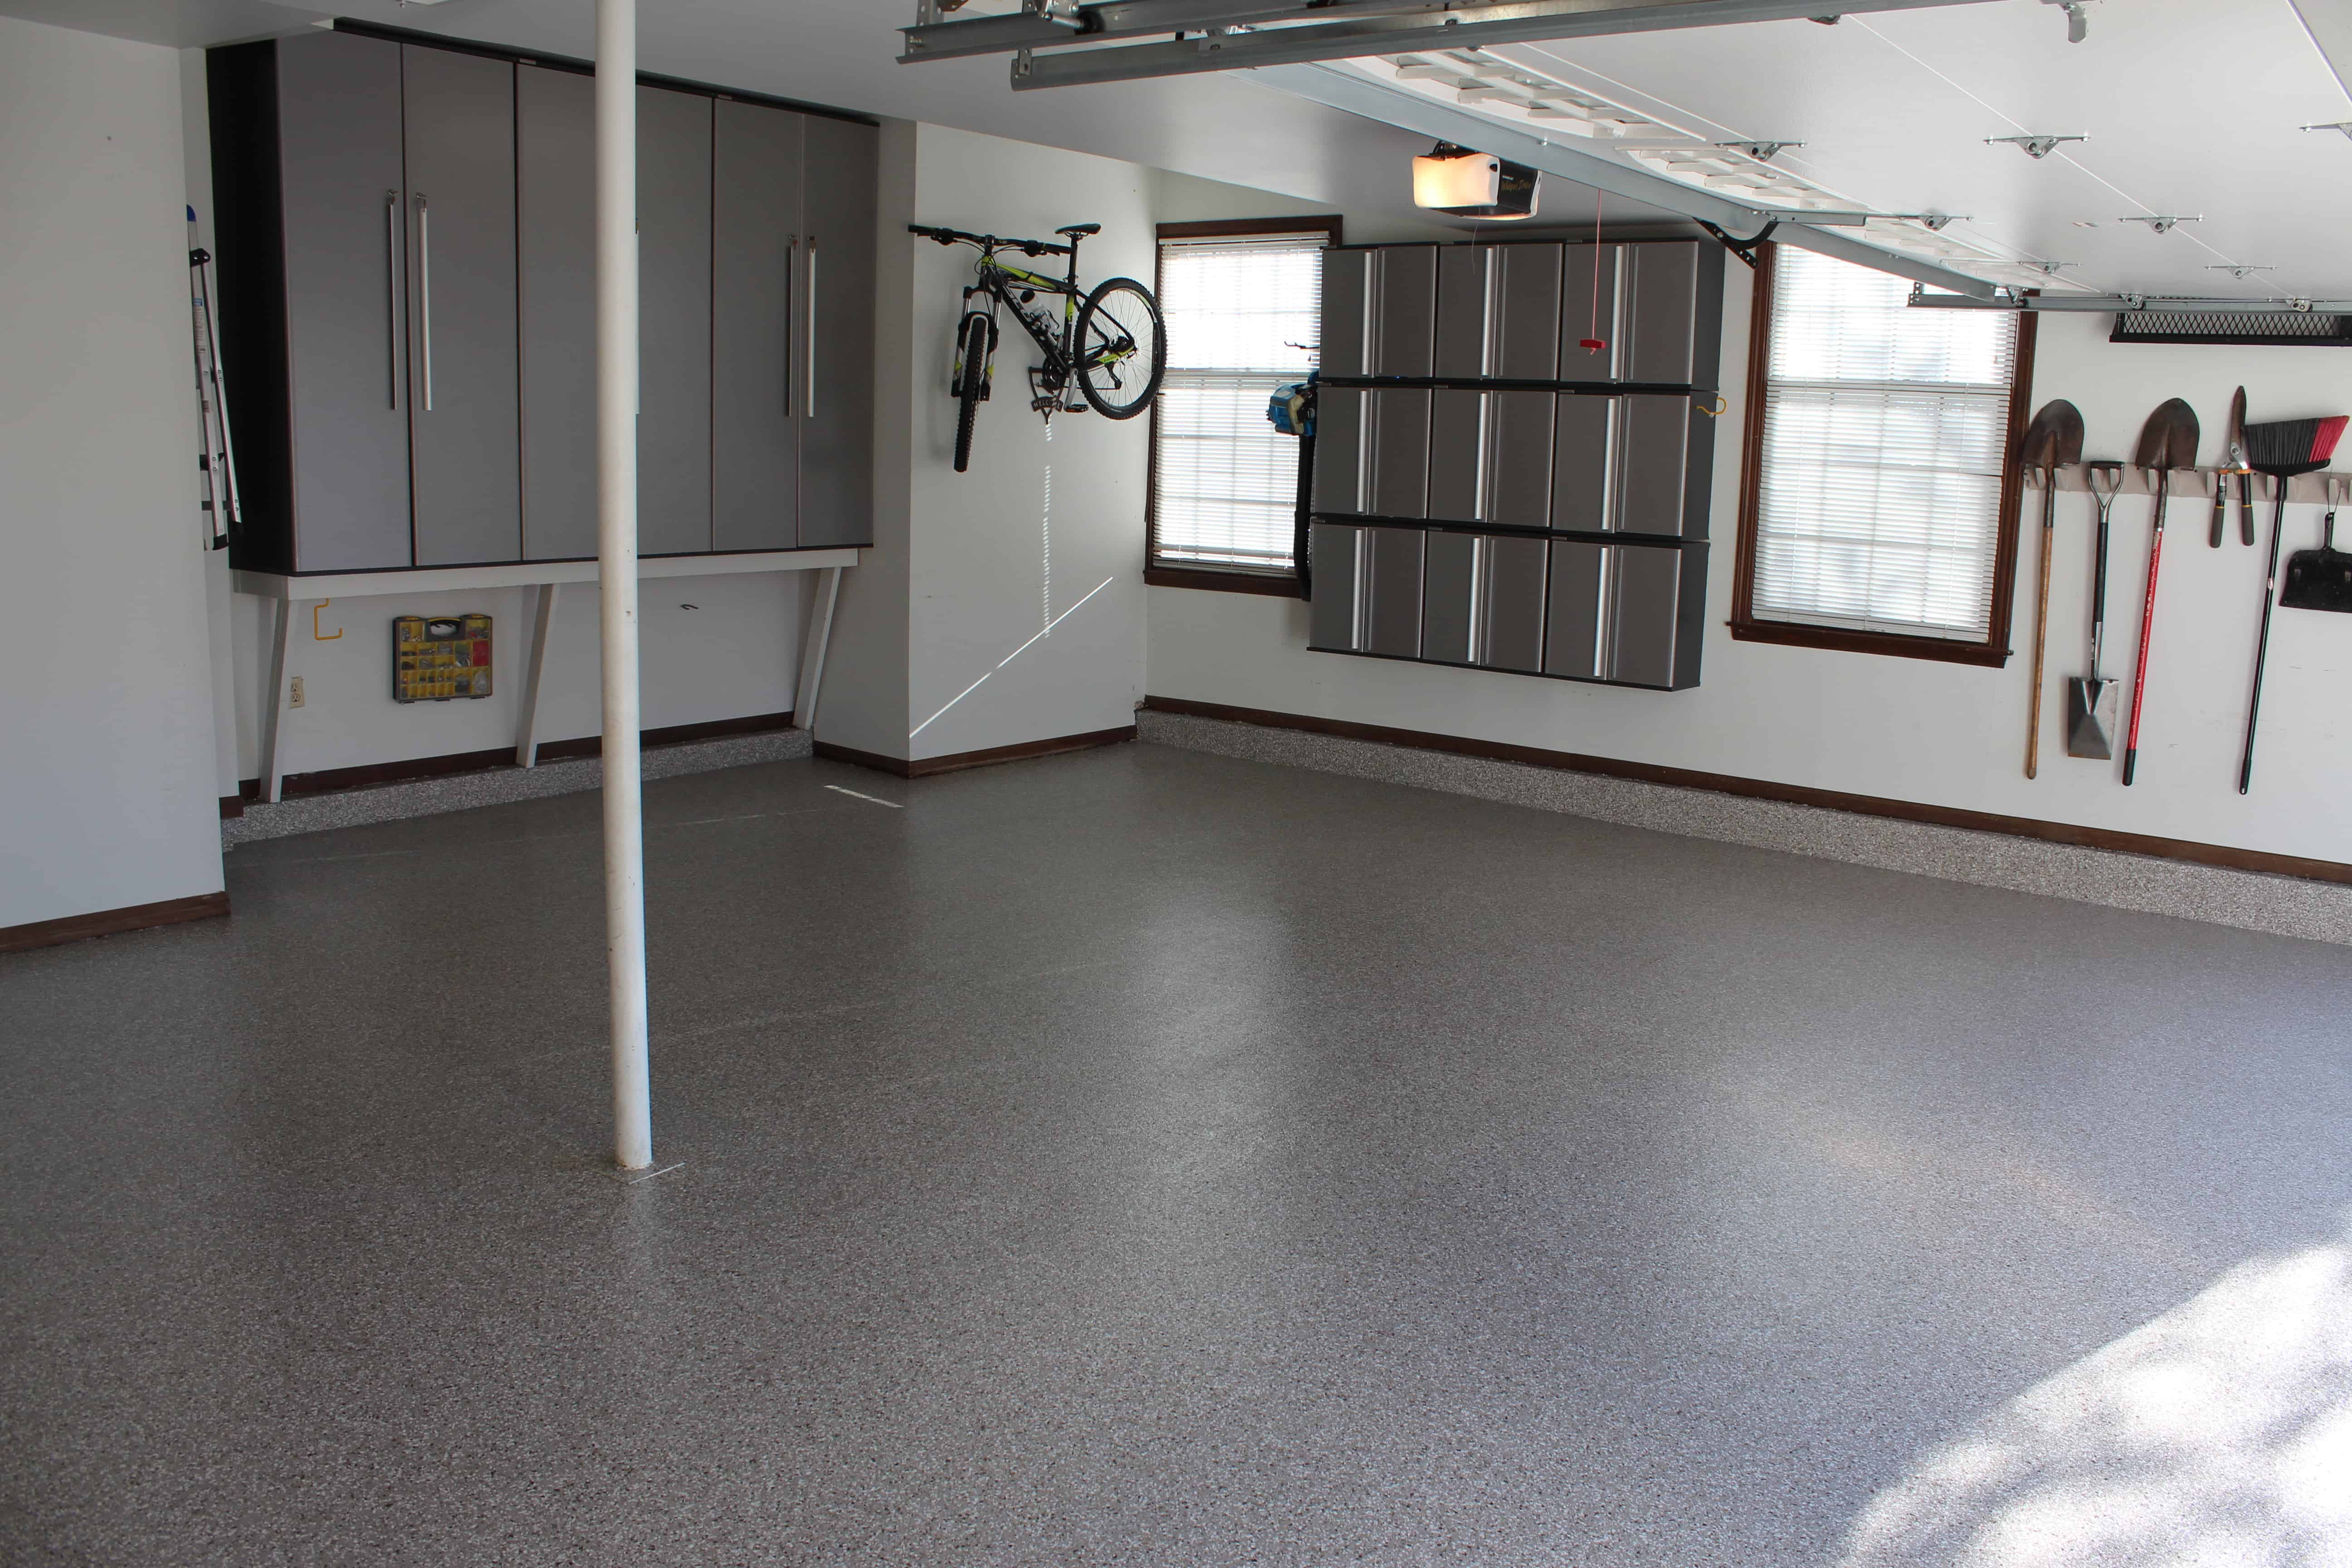 Garage Floor Epoxy Steps Kansas City Epoxy Garage Floor Contractors Amazing Garage Floors